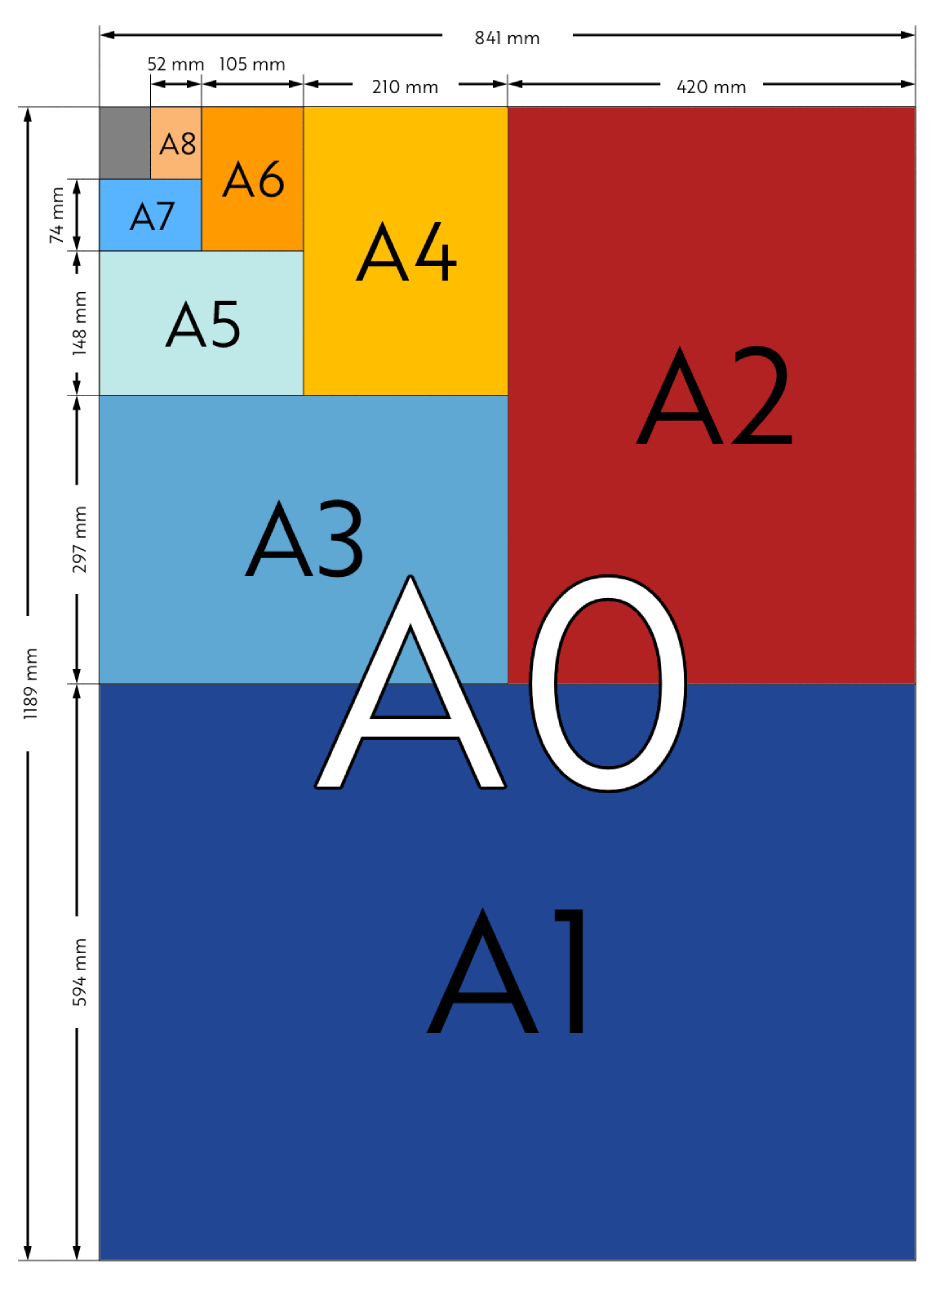 a series paper sizes table